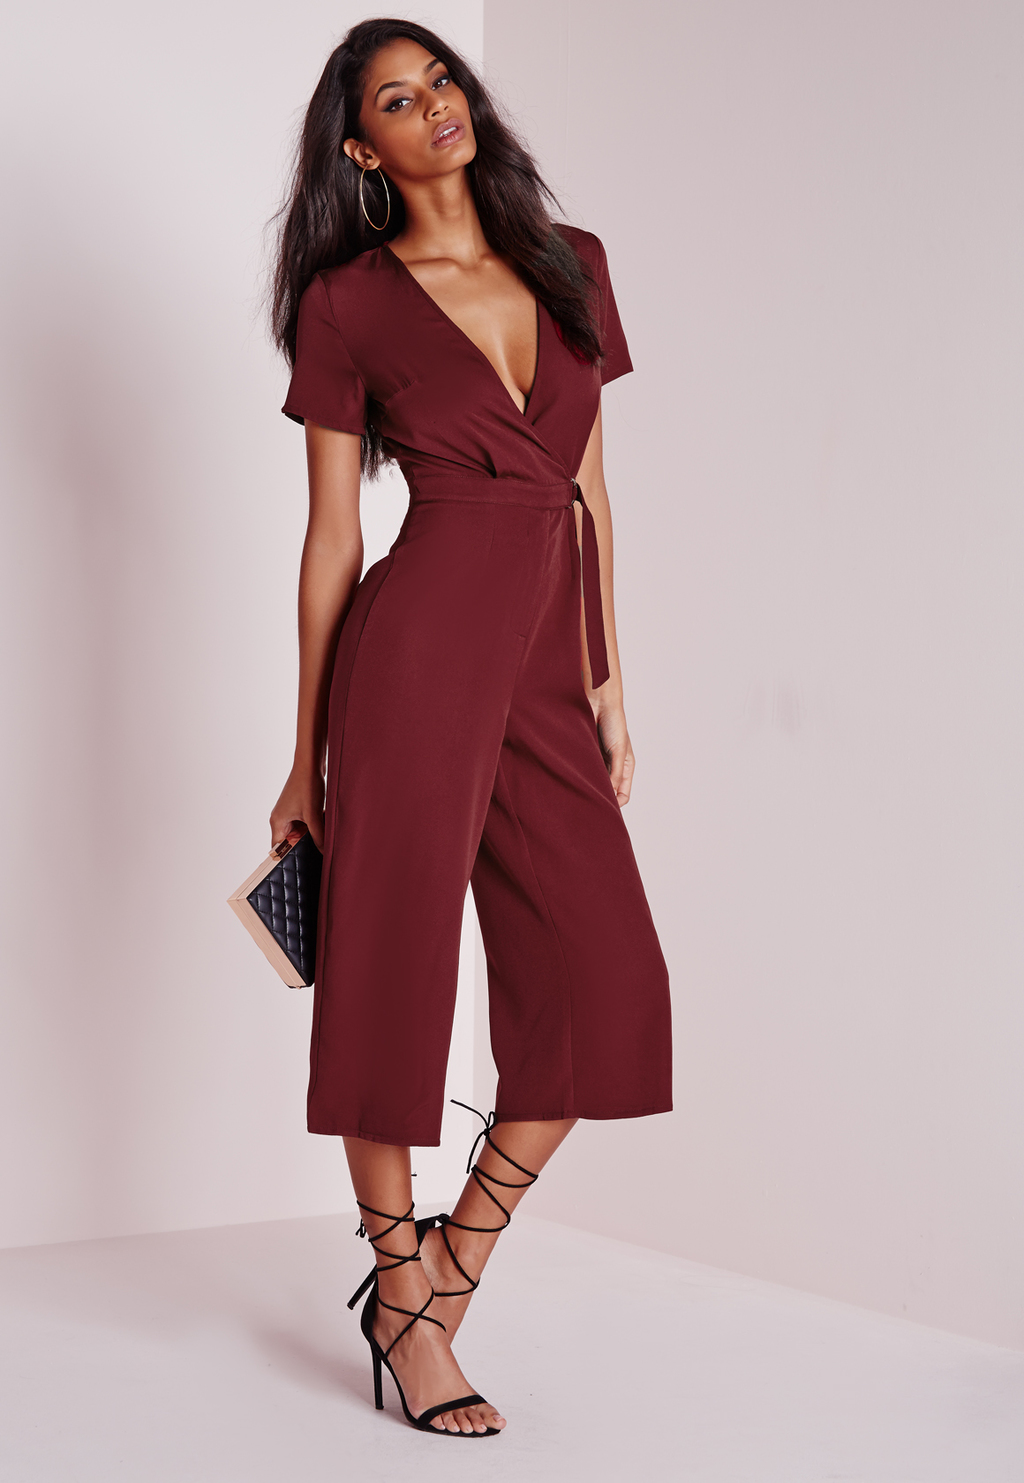 D Ring Wrap Culotte Jumpsuit Burgundy, Burgundy - neckline: plunge; fit: fitted at waist; pattern: plain; waist detail: belted waist/tie at waist/drawstring; predominant colour: burgundy; occasions: evening, occasion; length: calf length; fibres: polyester/polyamide - stretch; sleeve length: short sleeve; sleeve style: standard; style: jumpsuit; pattern type: fabric; texture group: jersey - stretchy/drapey; season: a/w 2015; wardrobe: event